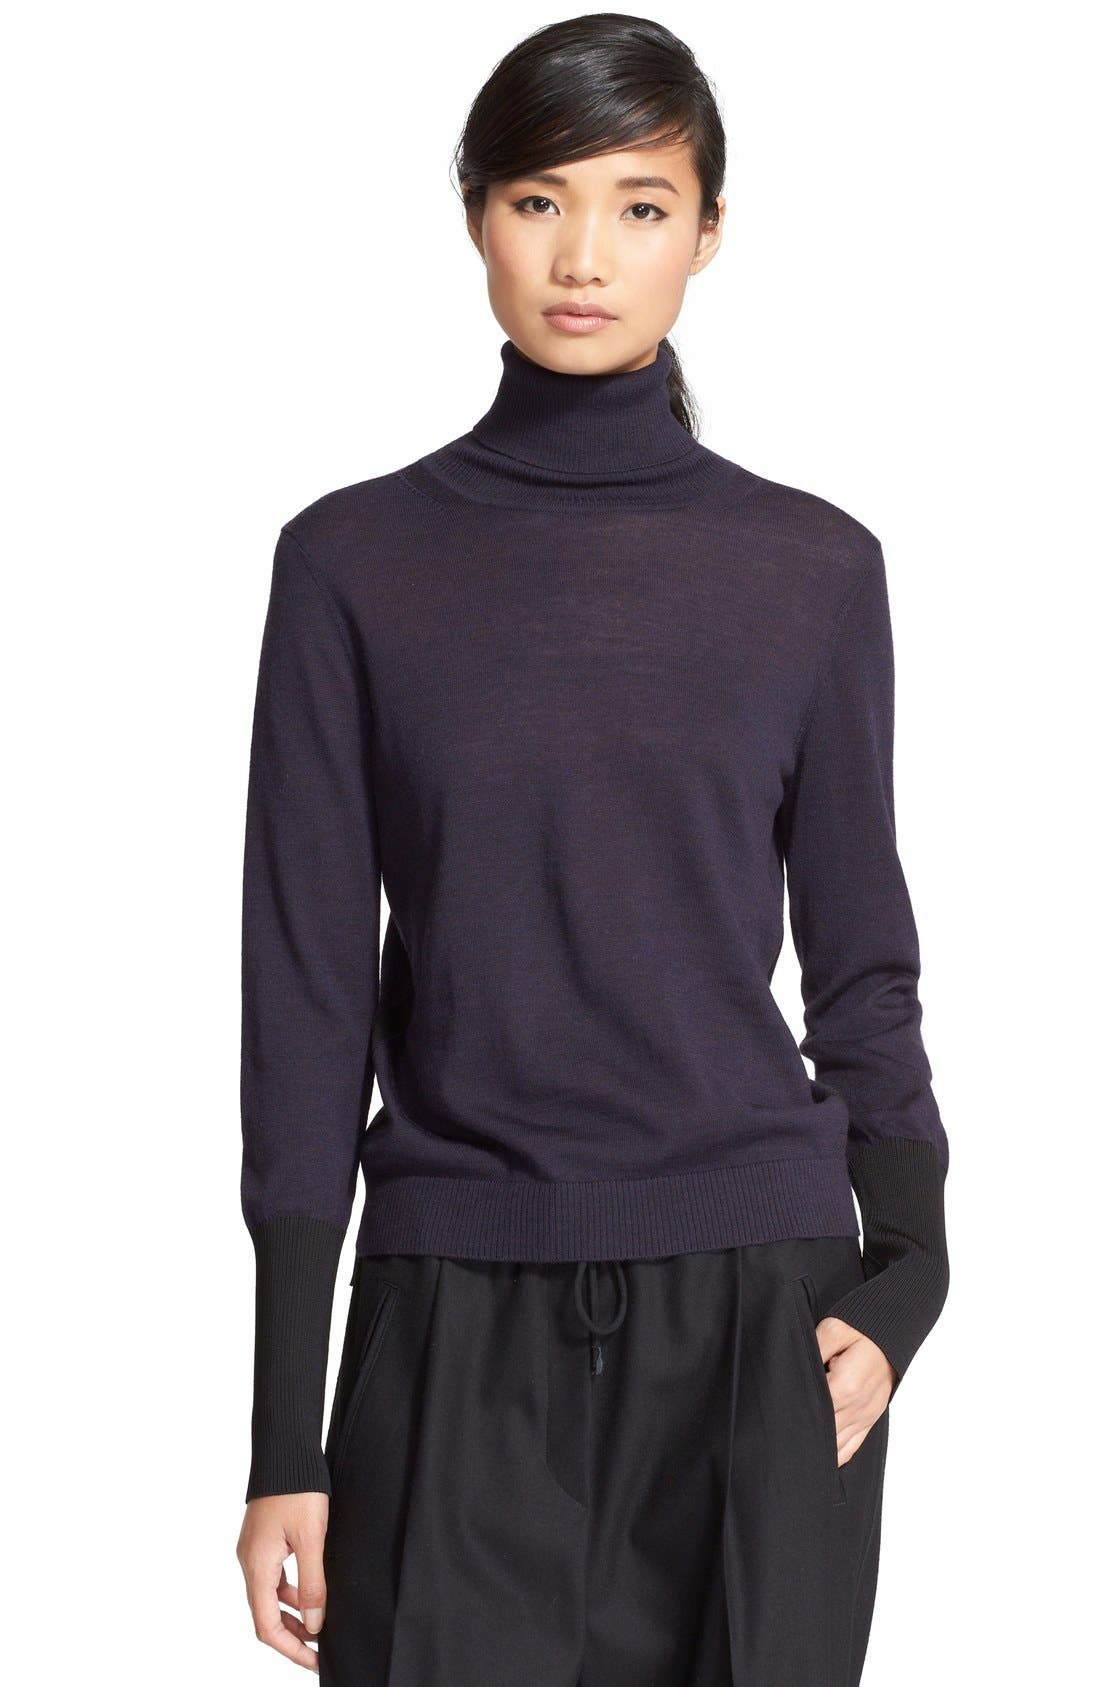 'Jessica' Wool Blend Turtleneck Sweater,                             Main thumbnail 1, color,                             001